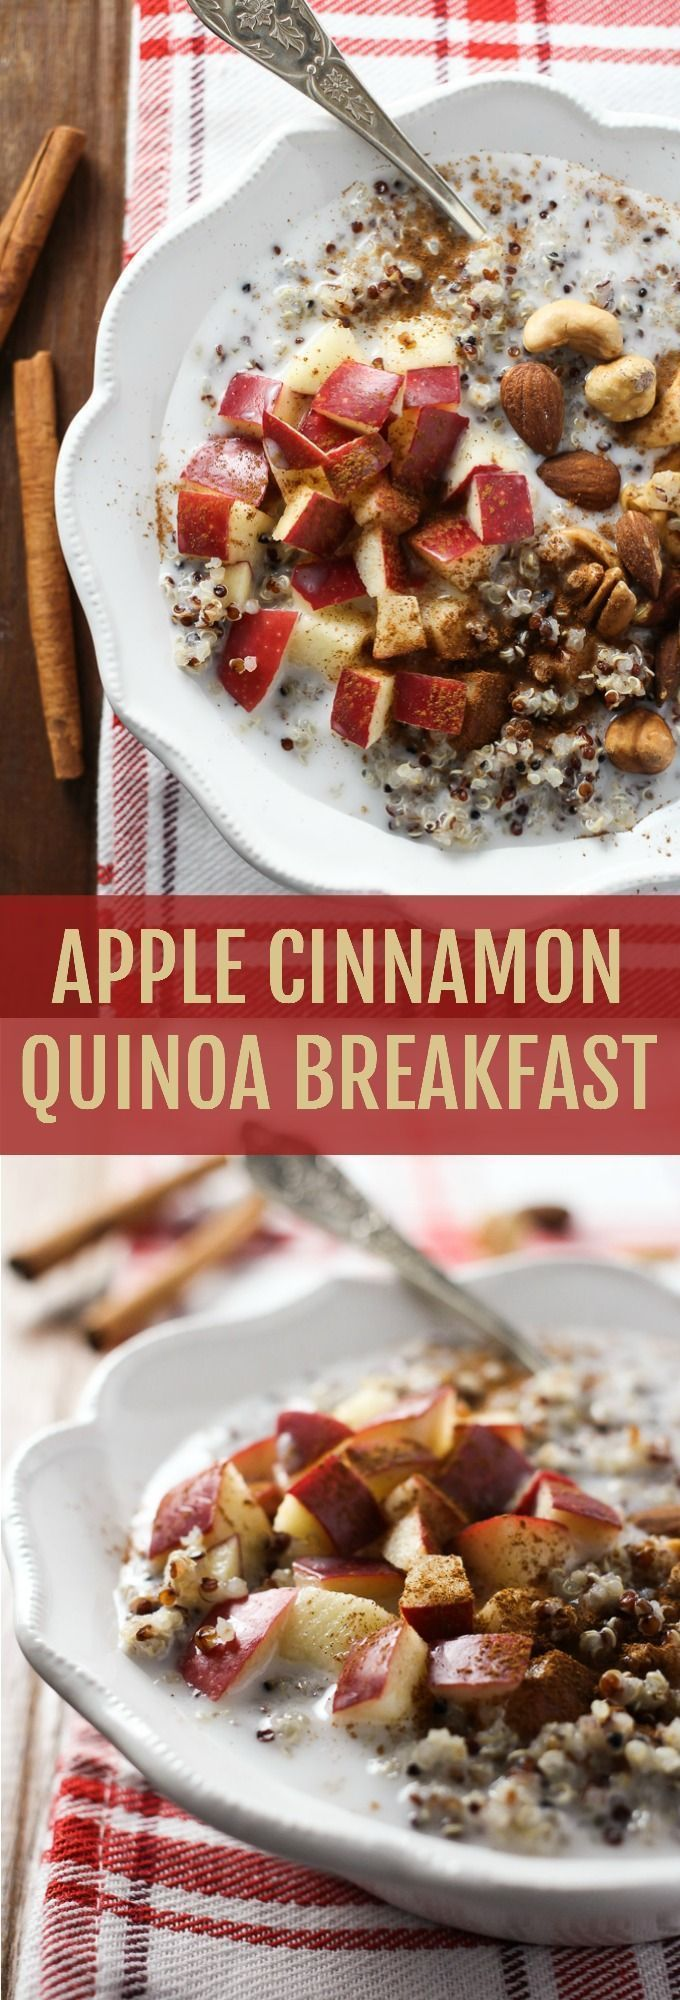 breakfast saludable #breakfast This Apple Cinnamon Quinoa Breakfast is very easy to put together. Its filling and full of plant protein, fiber, healthy fat, vitamins, and nutrients.